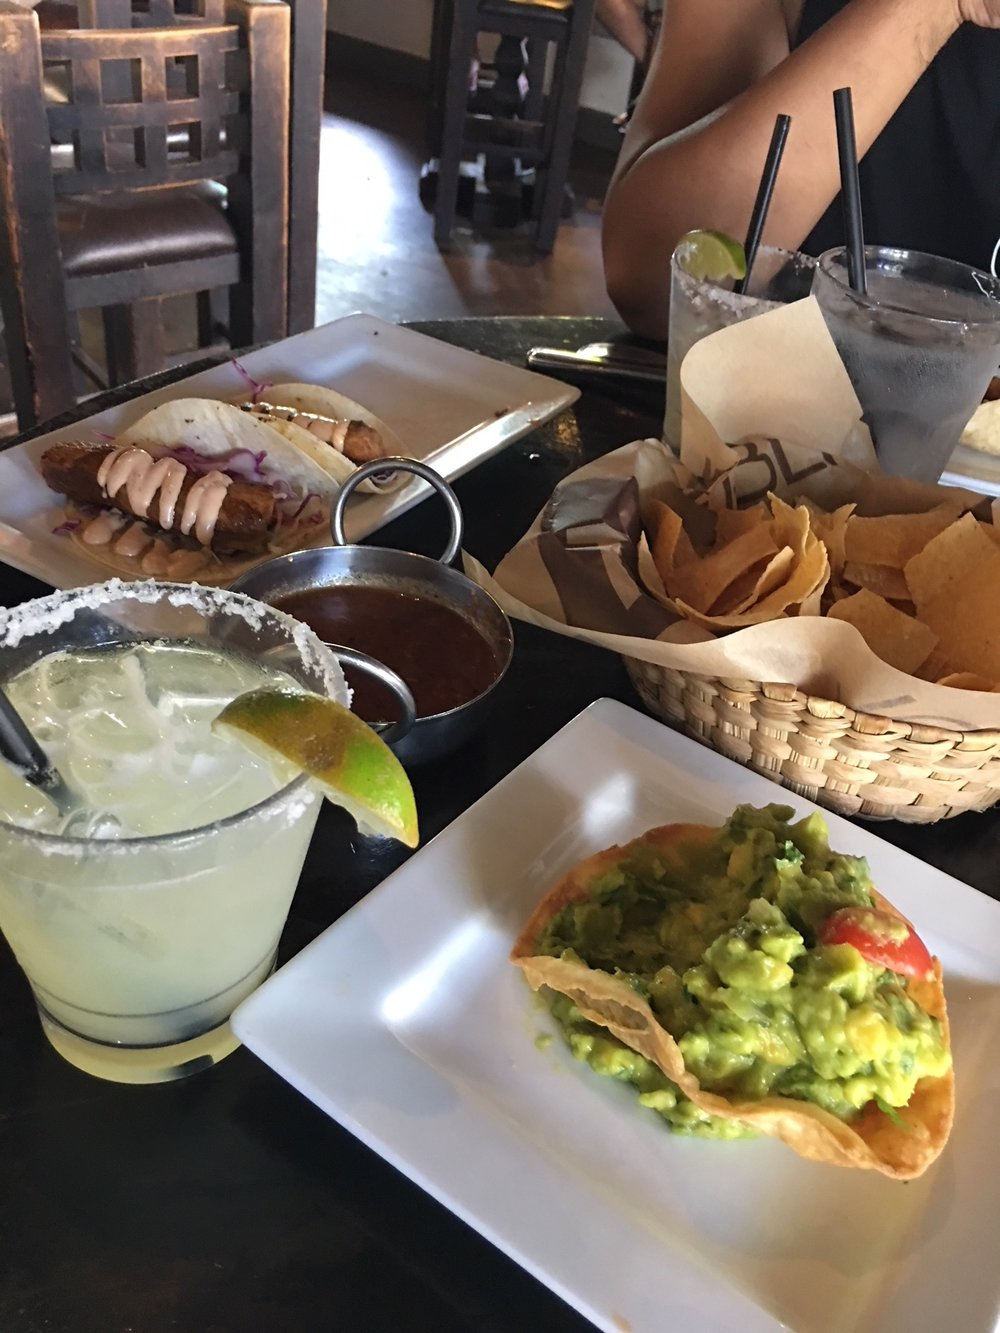 Happy Hour at Tortilla Republic - Yummy Mexican restaurant with cute decor and good drink specials too. They had margaritas on special the day we went!